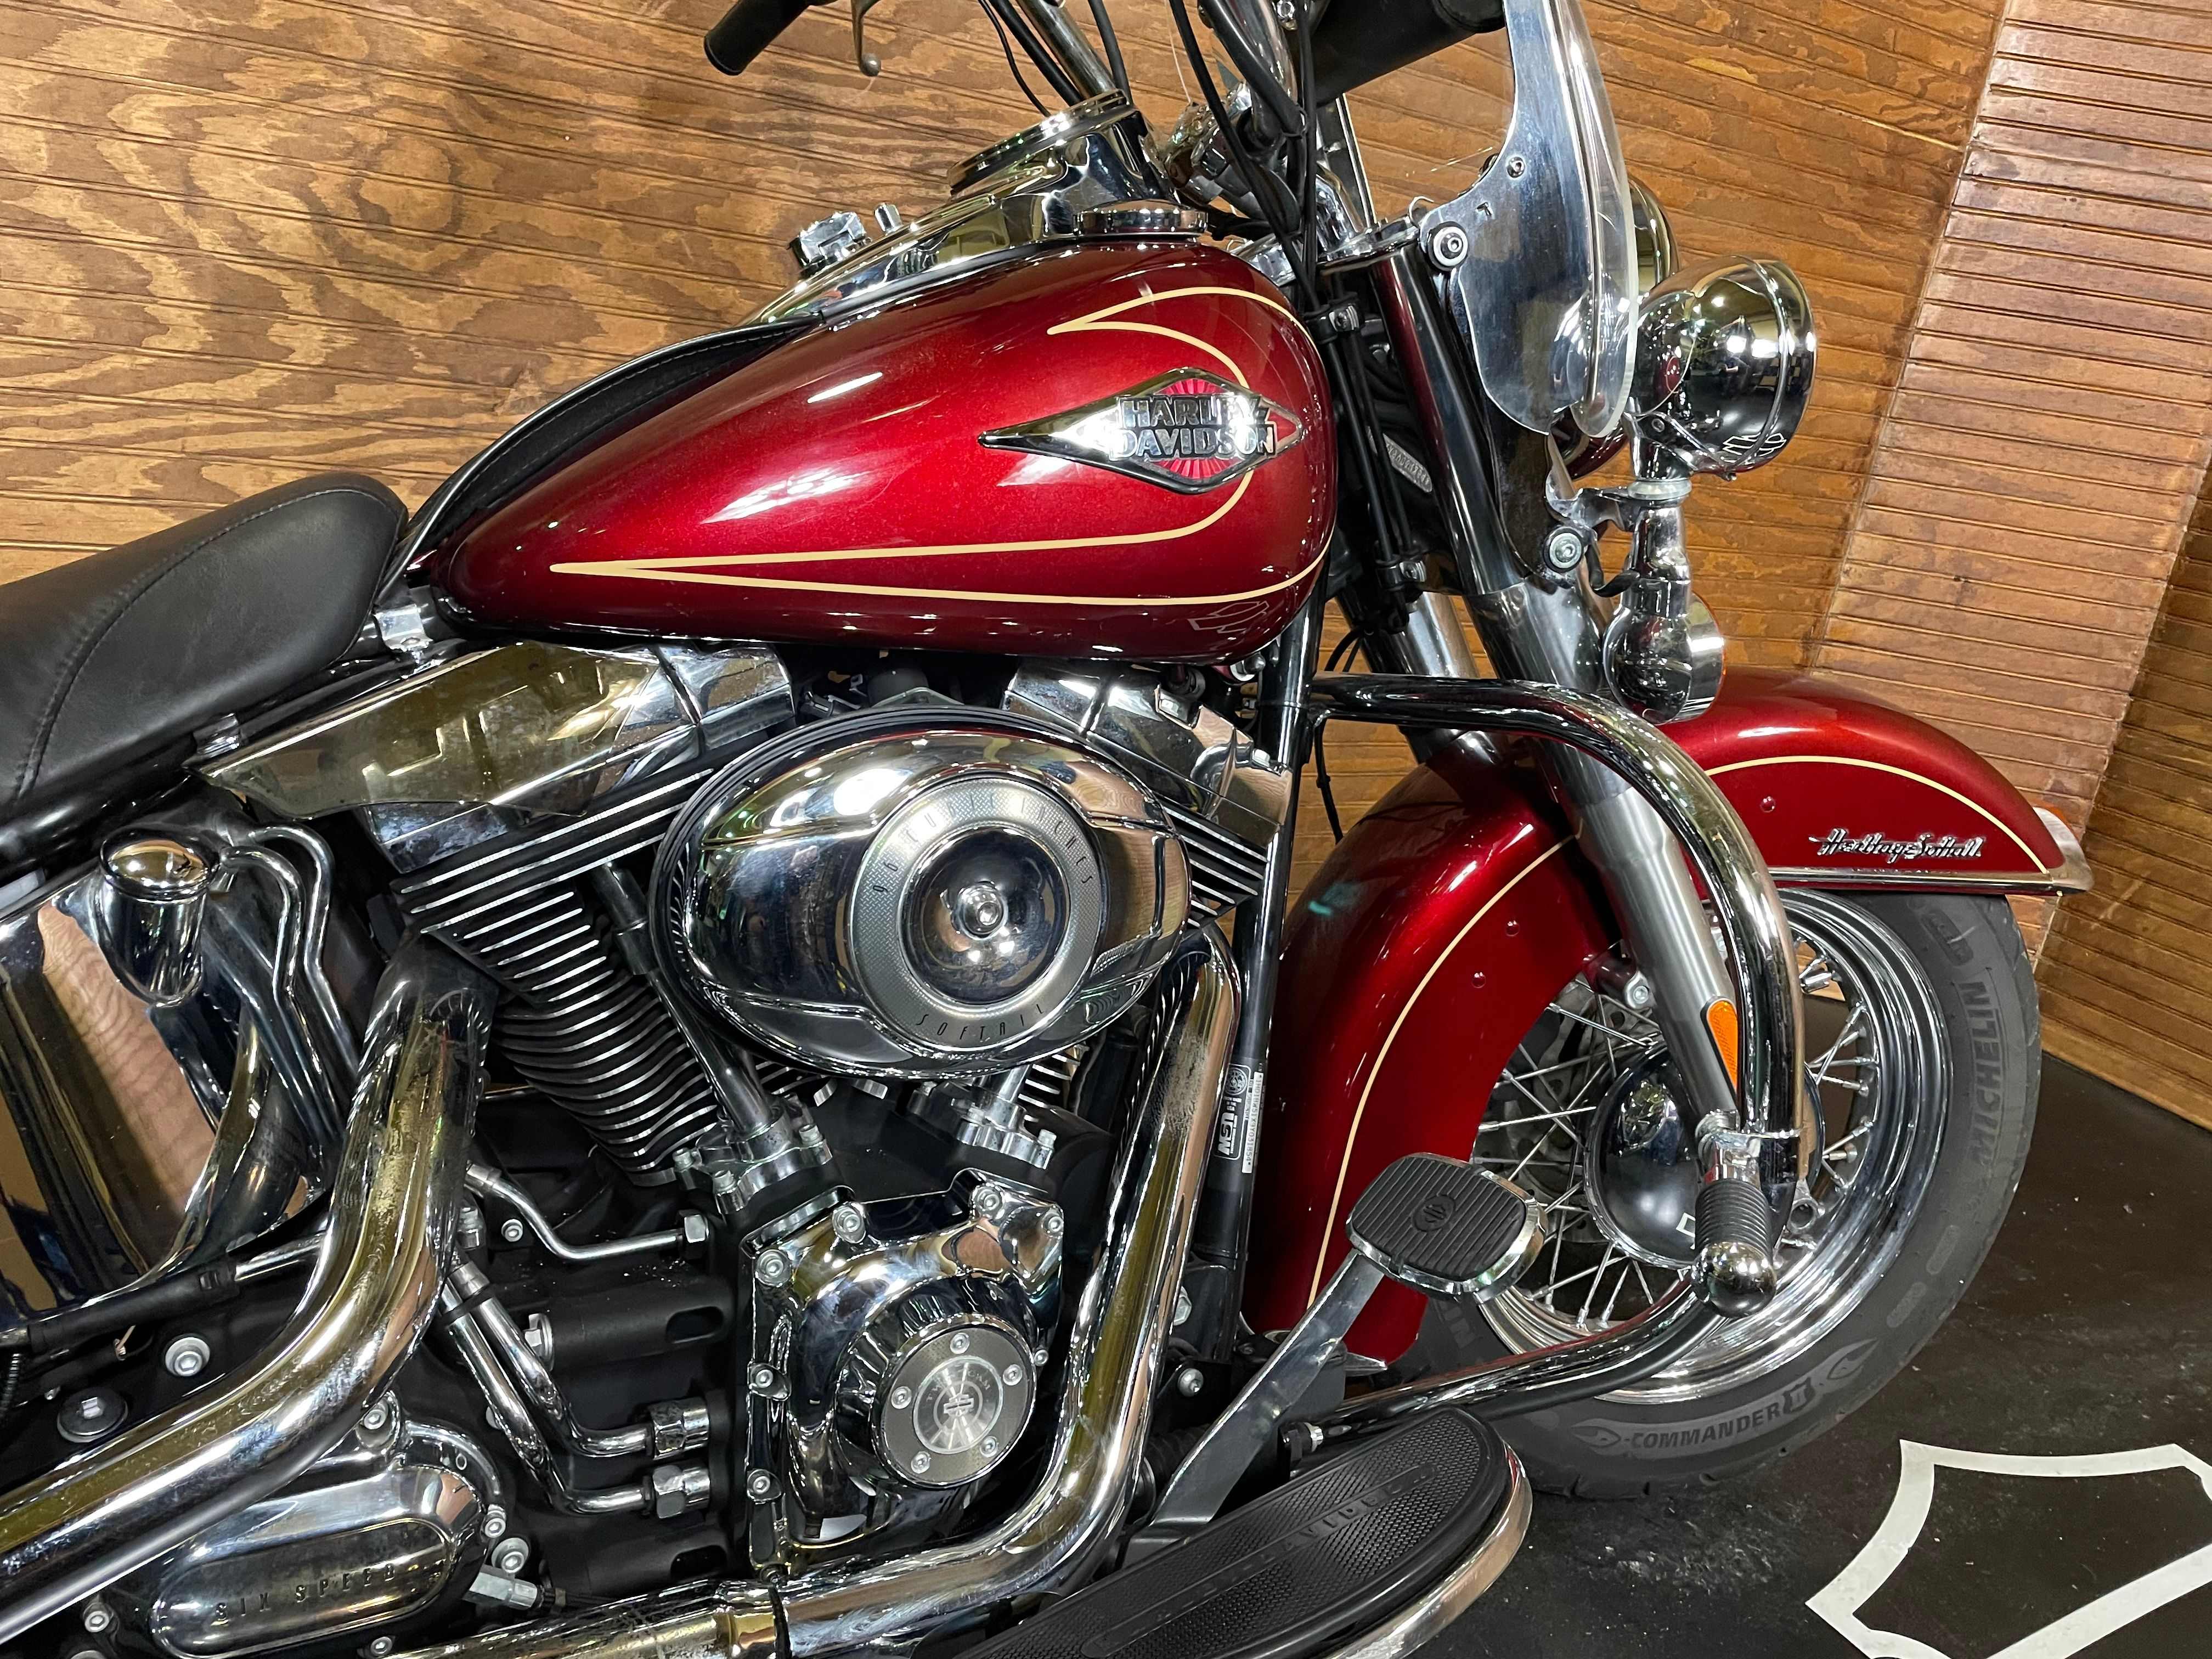 Pre-Owned 2009 Harley-Davidson Heritage Softail Classic